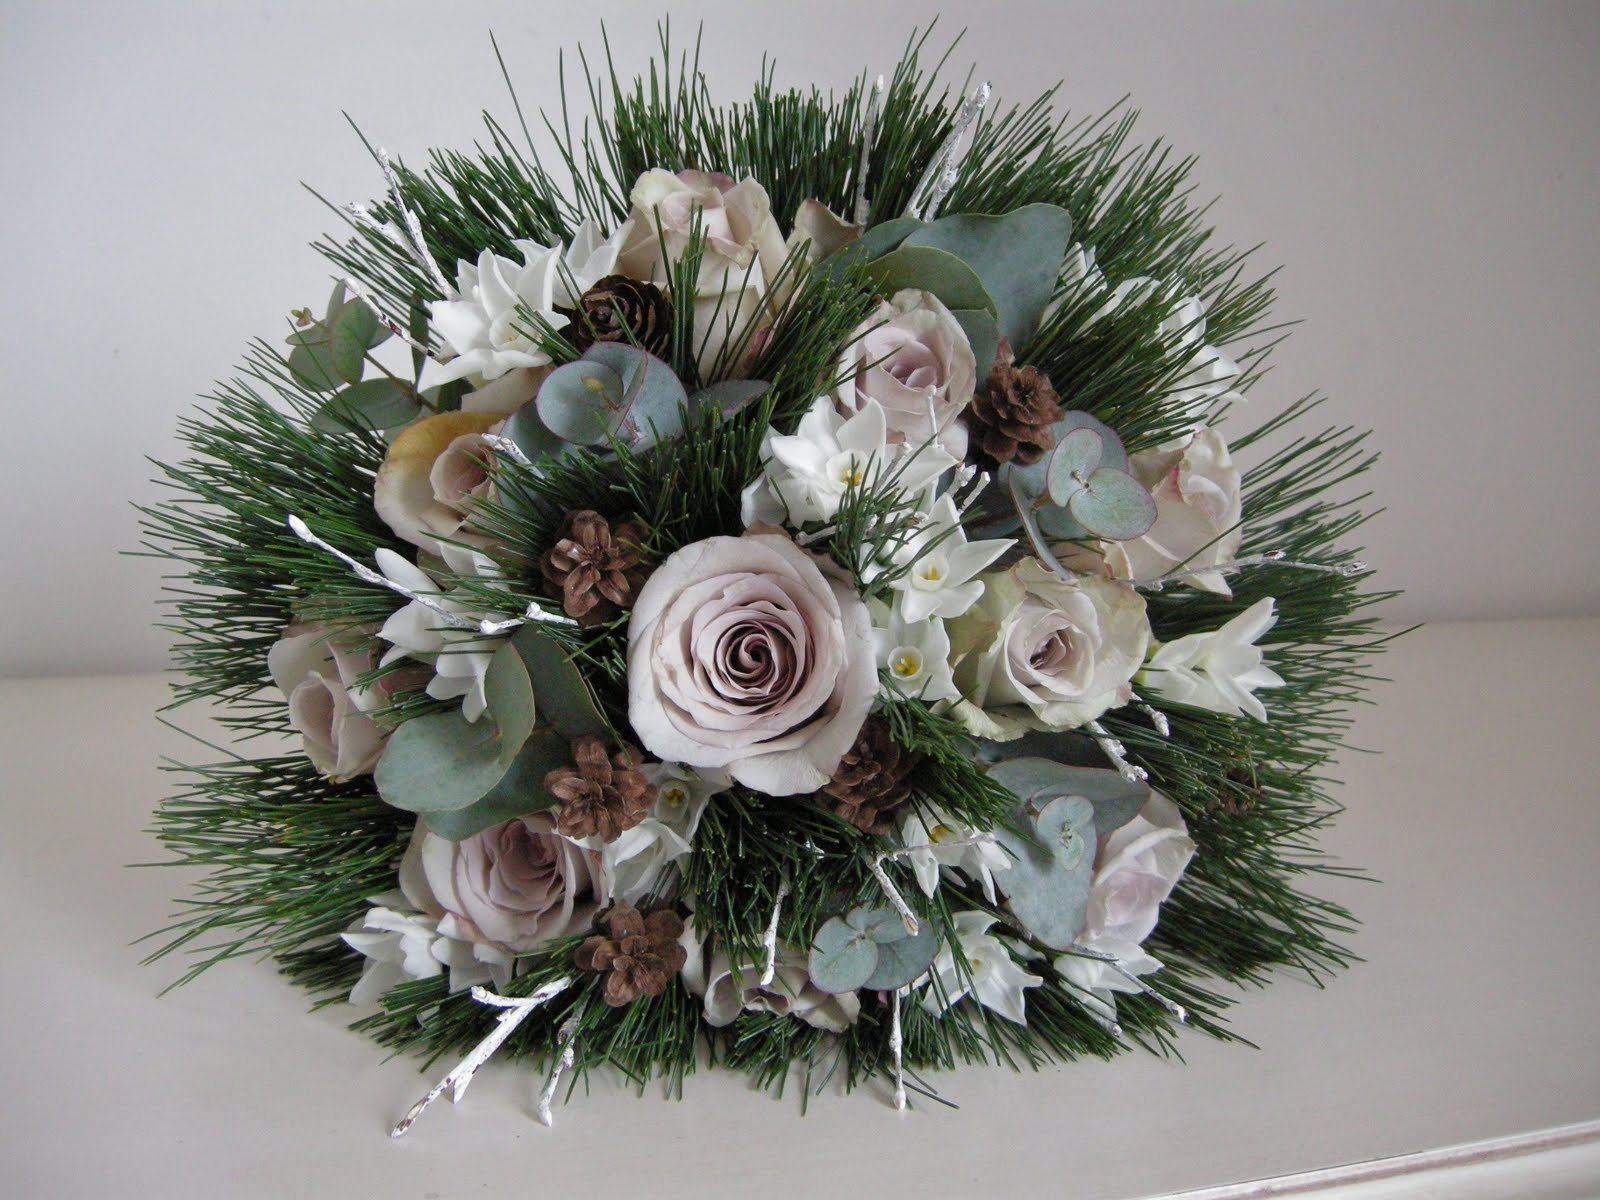 Wedding flowers blog winter wedding flowers vintage style with the vintage theme staying ever strong and an increasing number of winter weddings i thought it might be interesting to create some designs that junglespirit Image collections